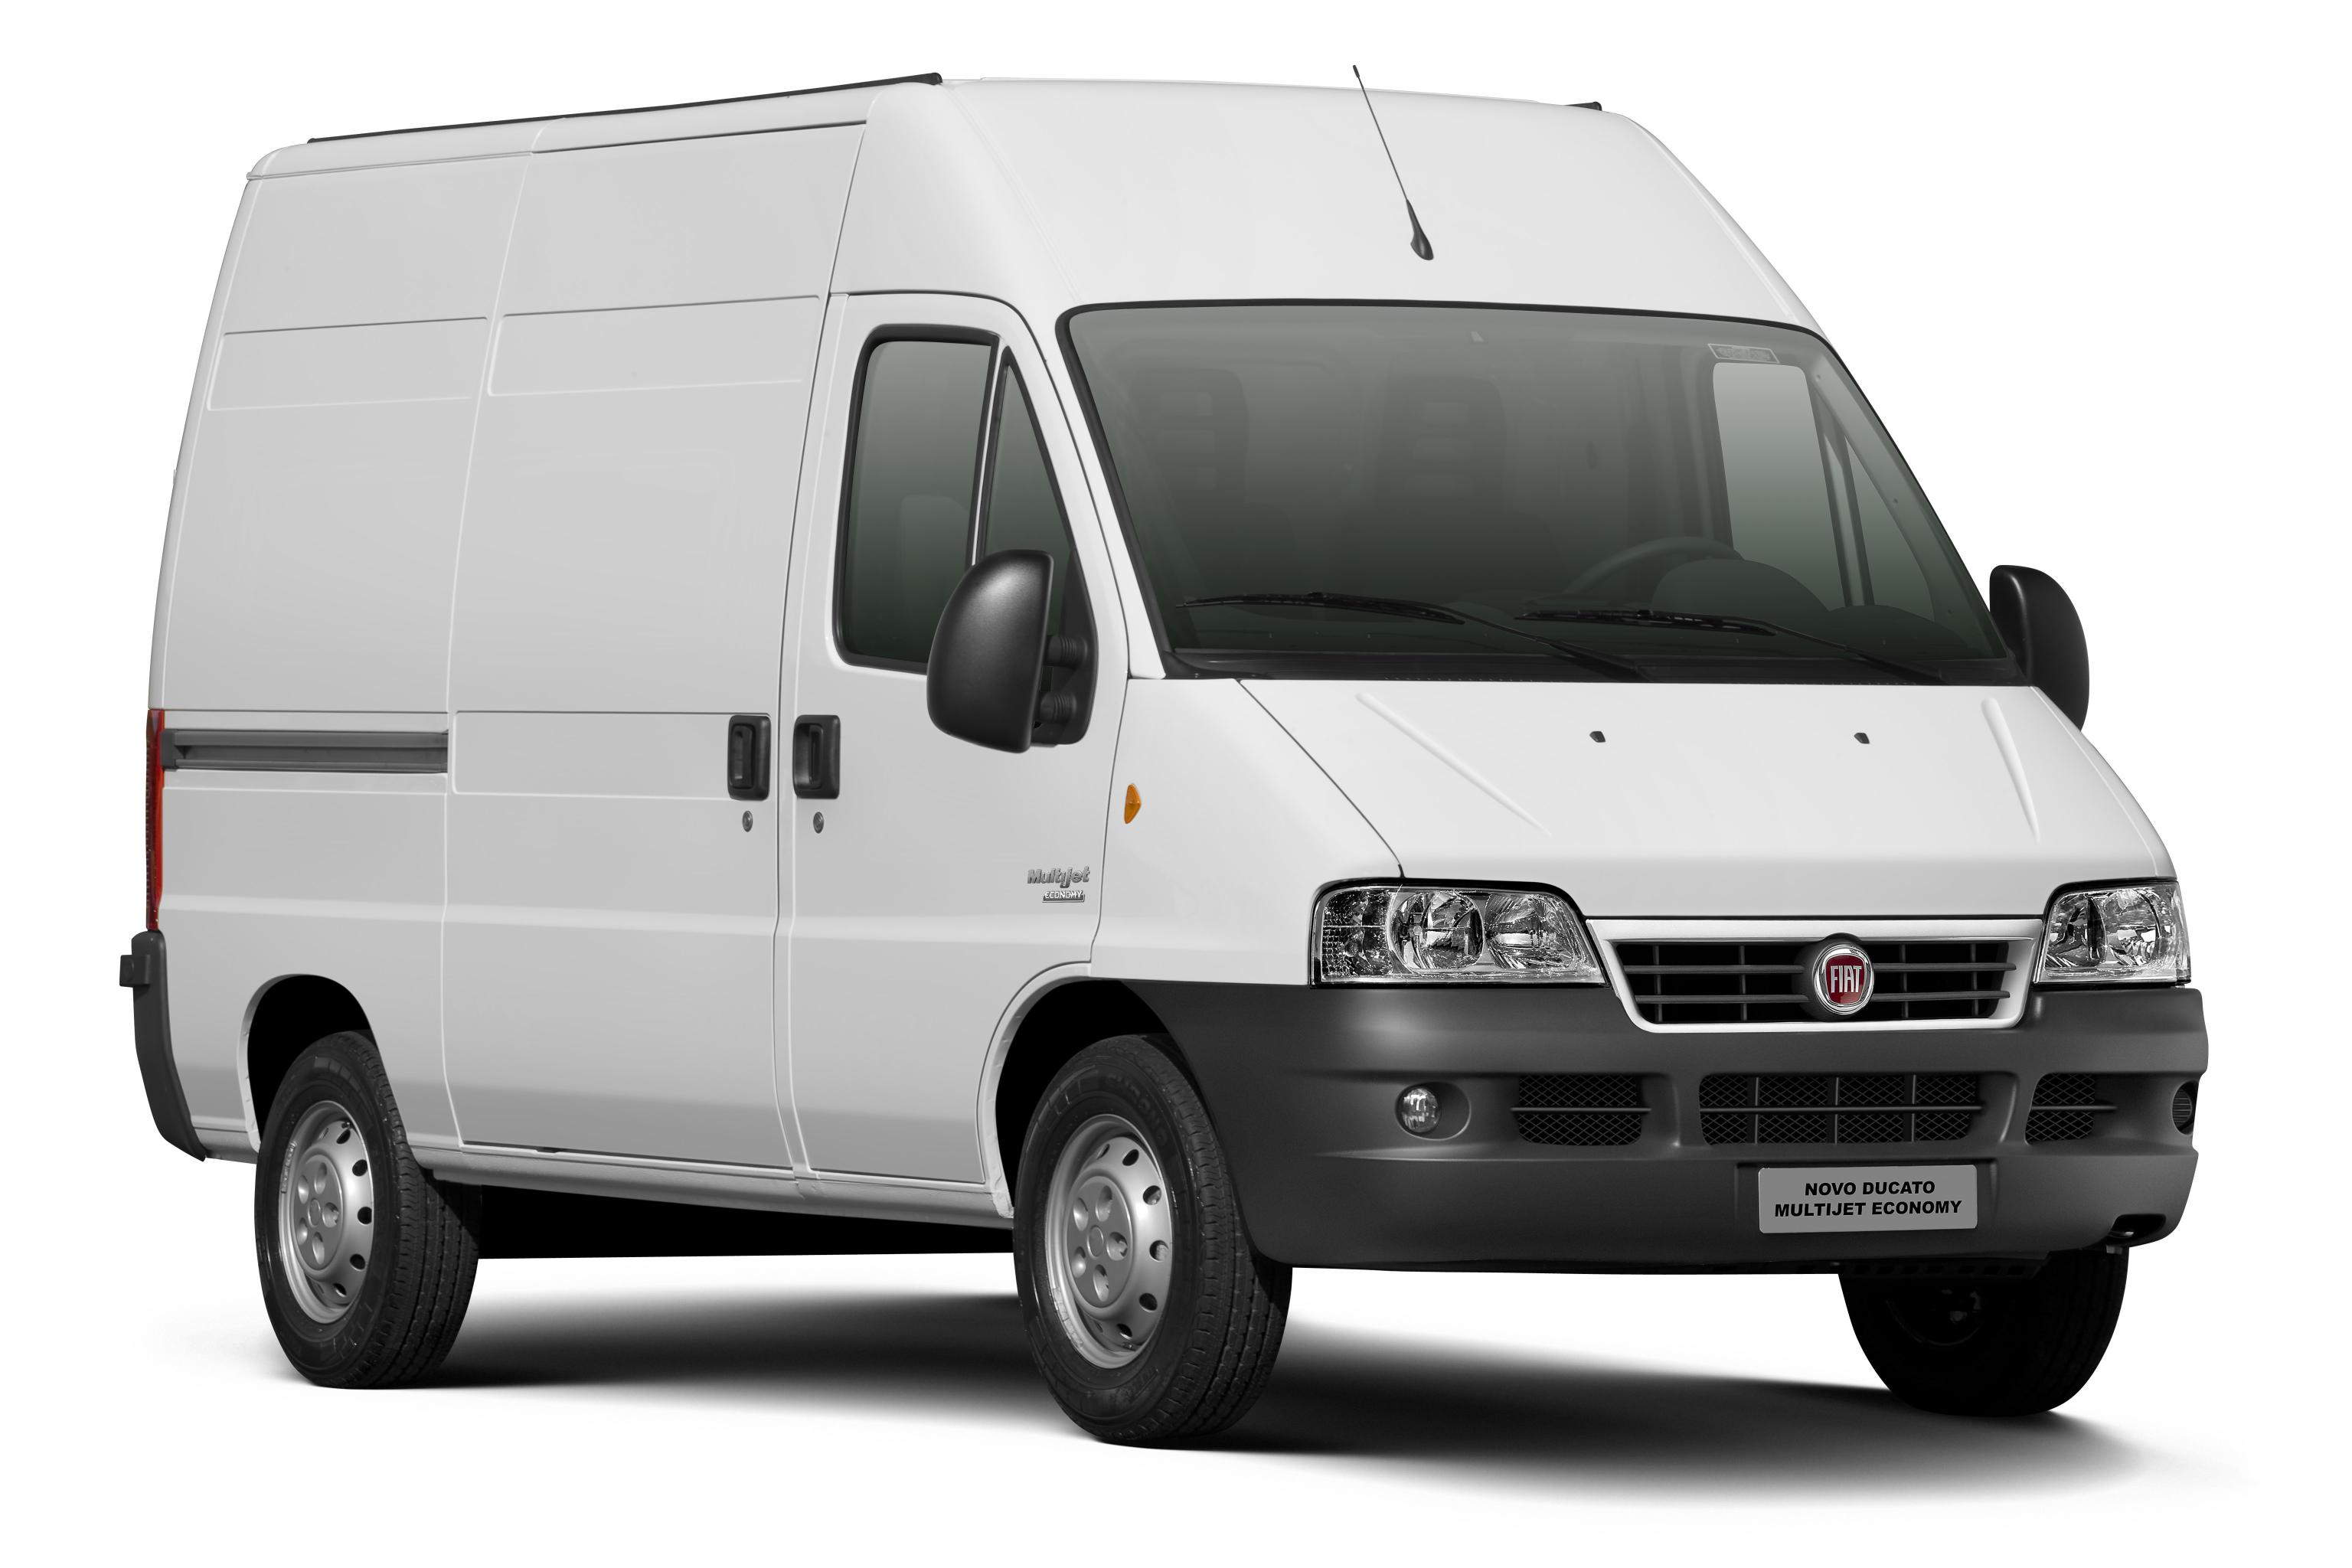 Góra Fiat Ducato 2011: Review, Amazing Pictures and Images – Look at CN64